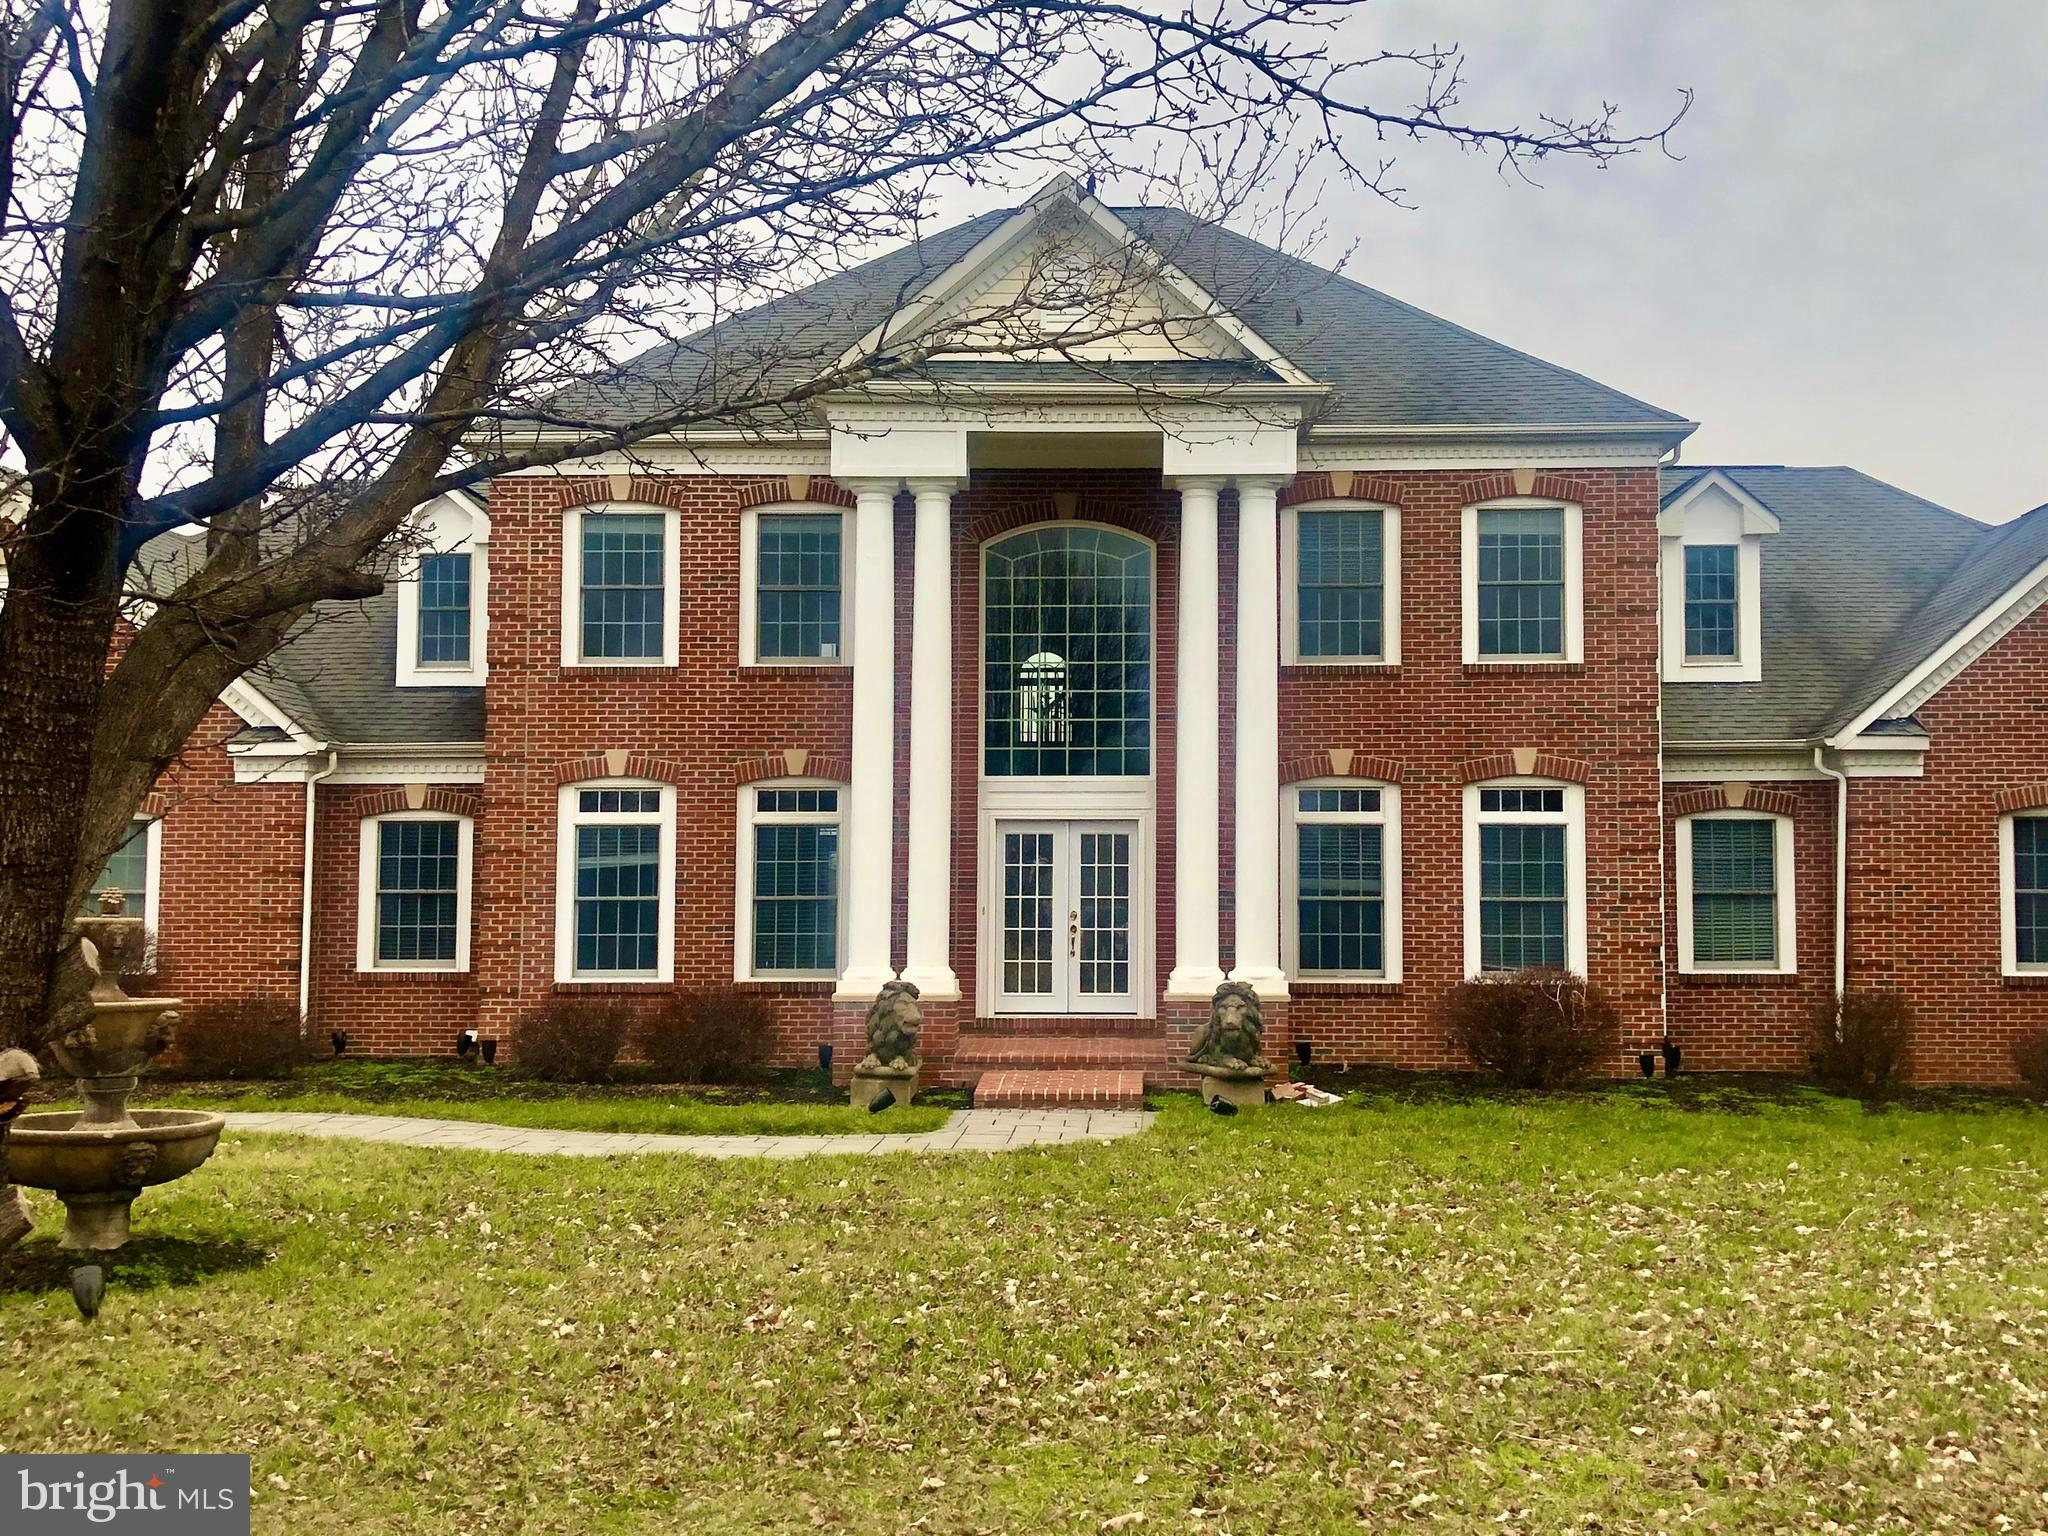 22001 BROWN FARM WAY, BROOKEVILLE, MD 20833